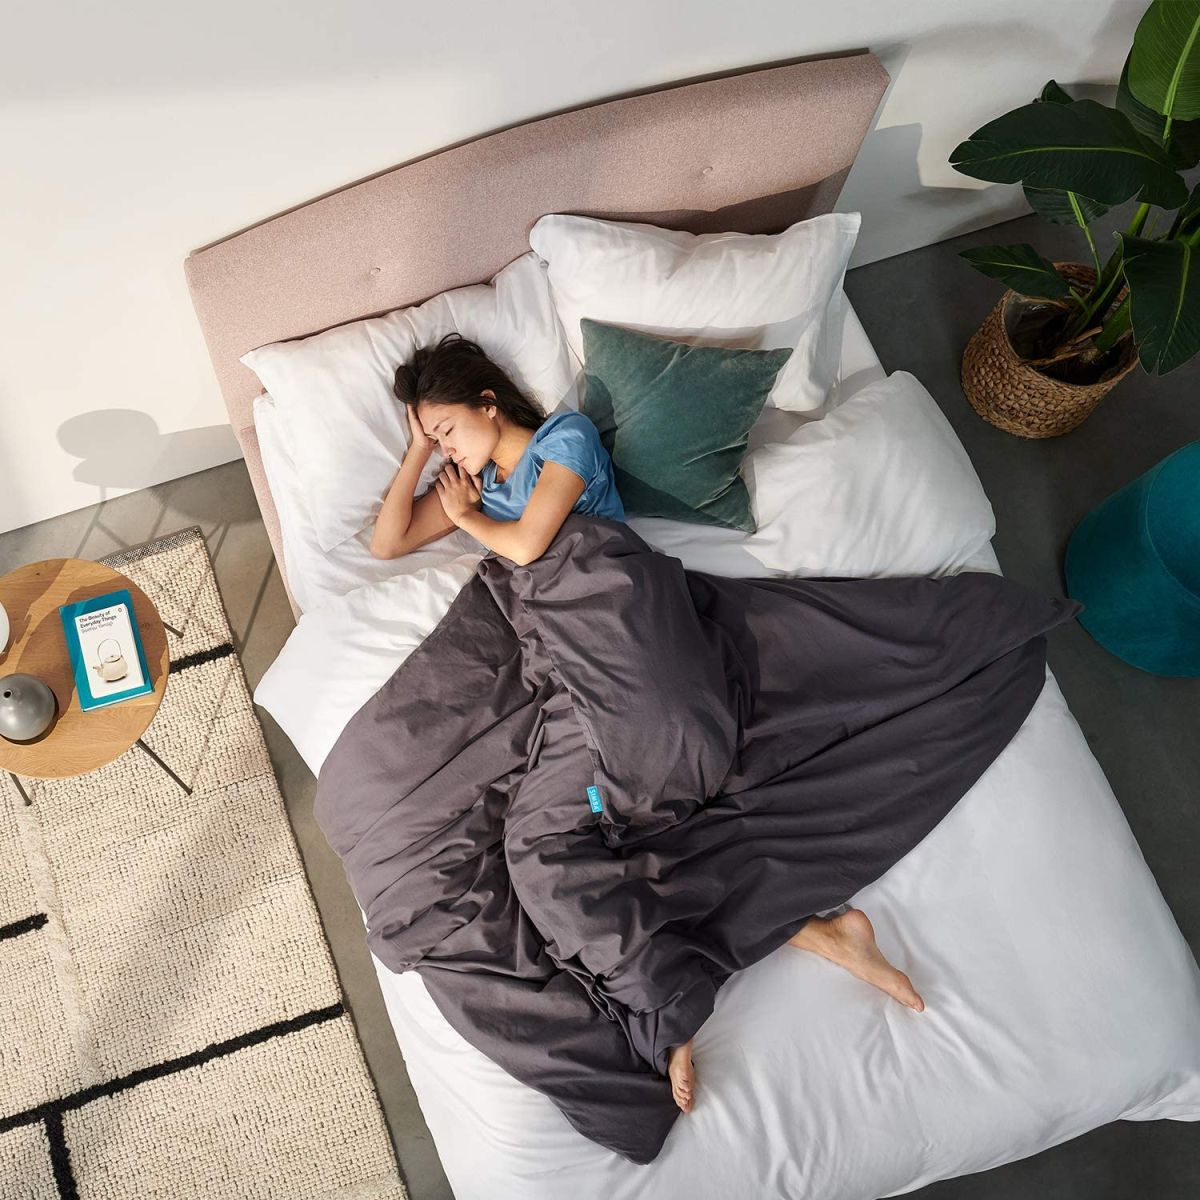 5 of the best weighted blankets to help you sleep and reduce stress